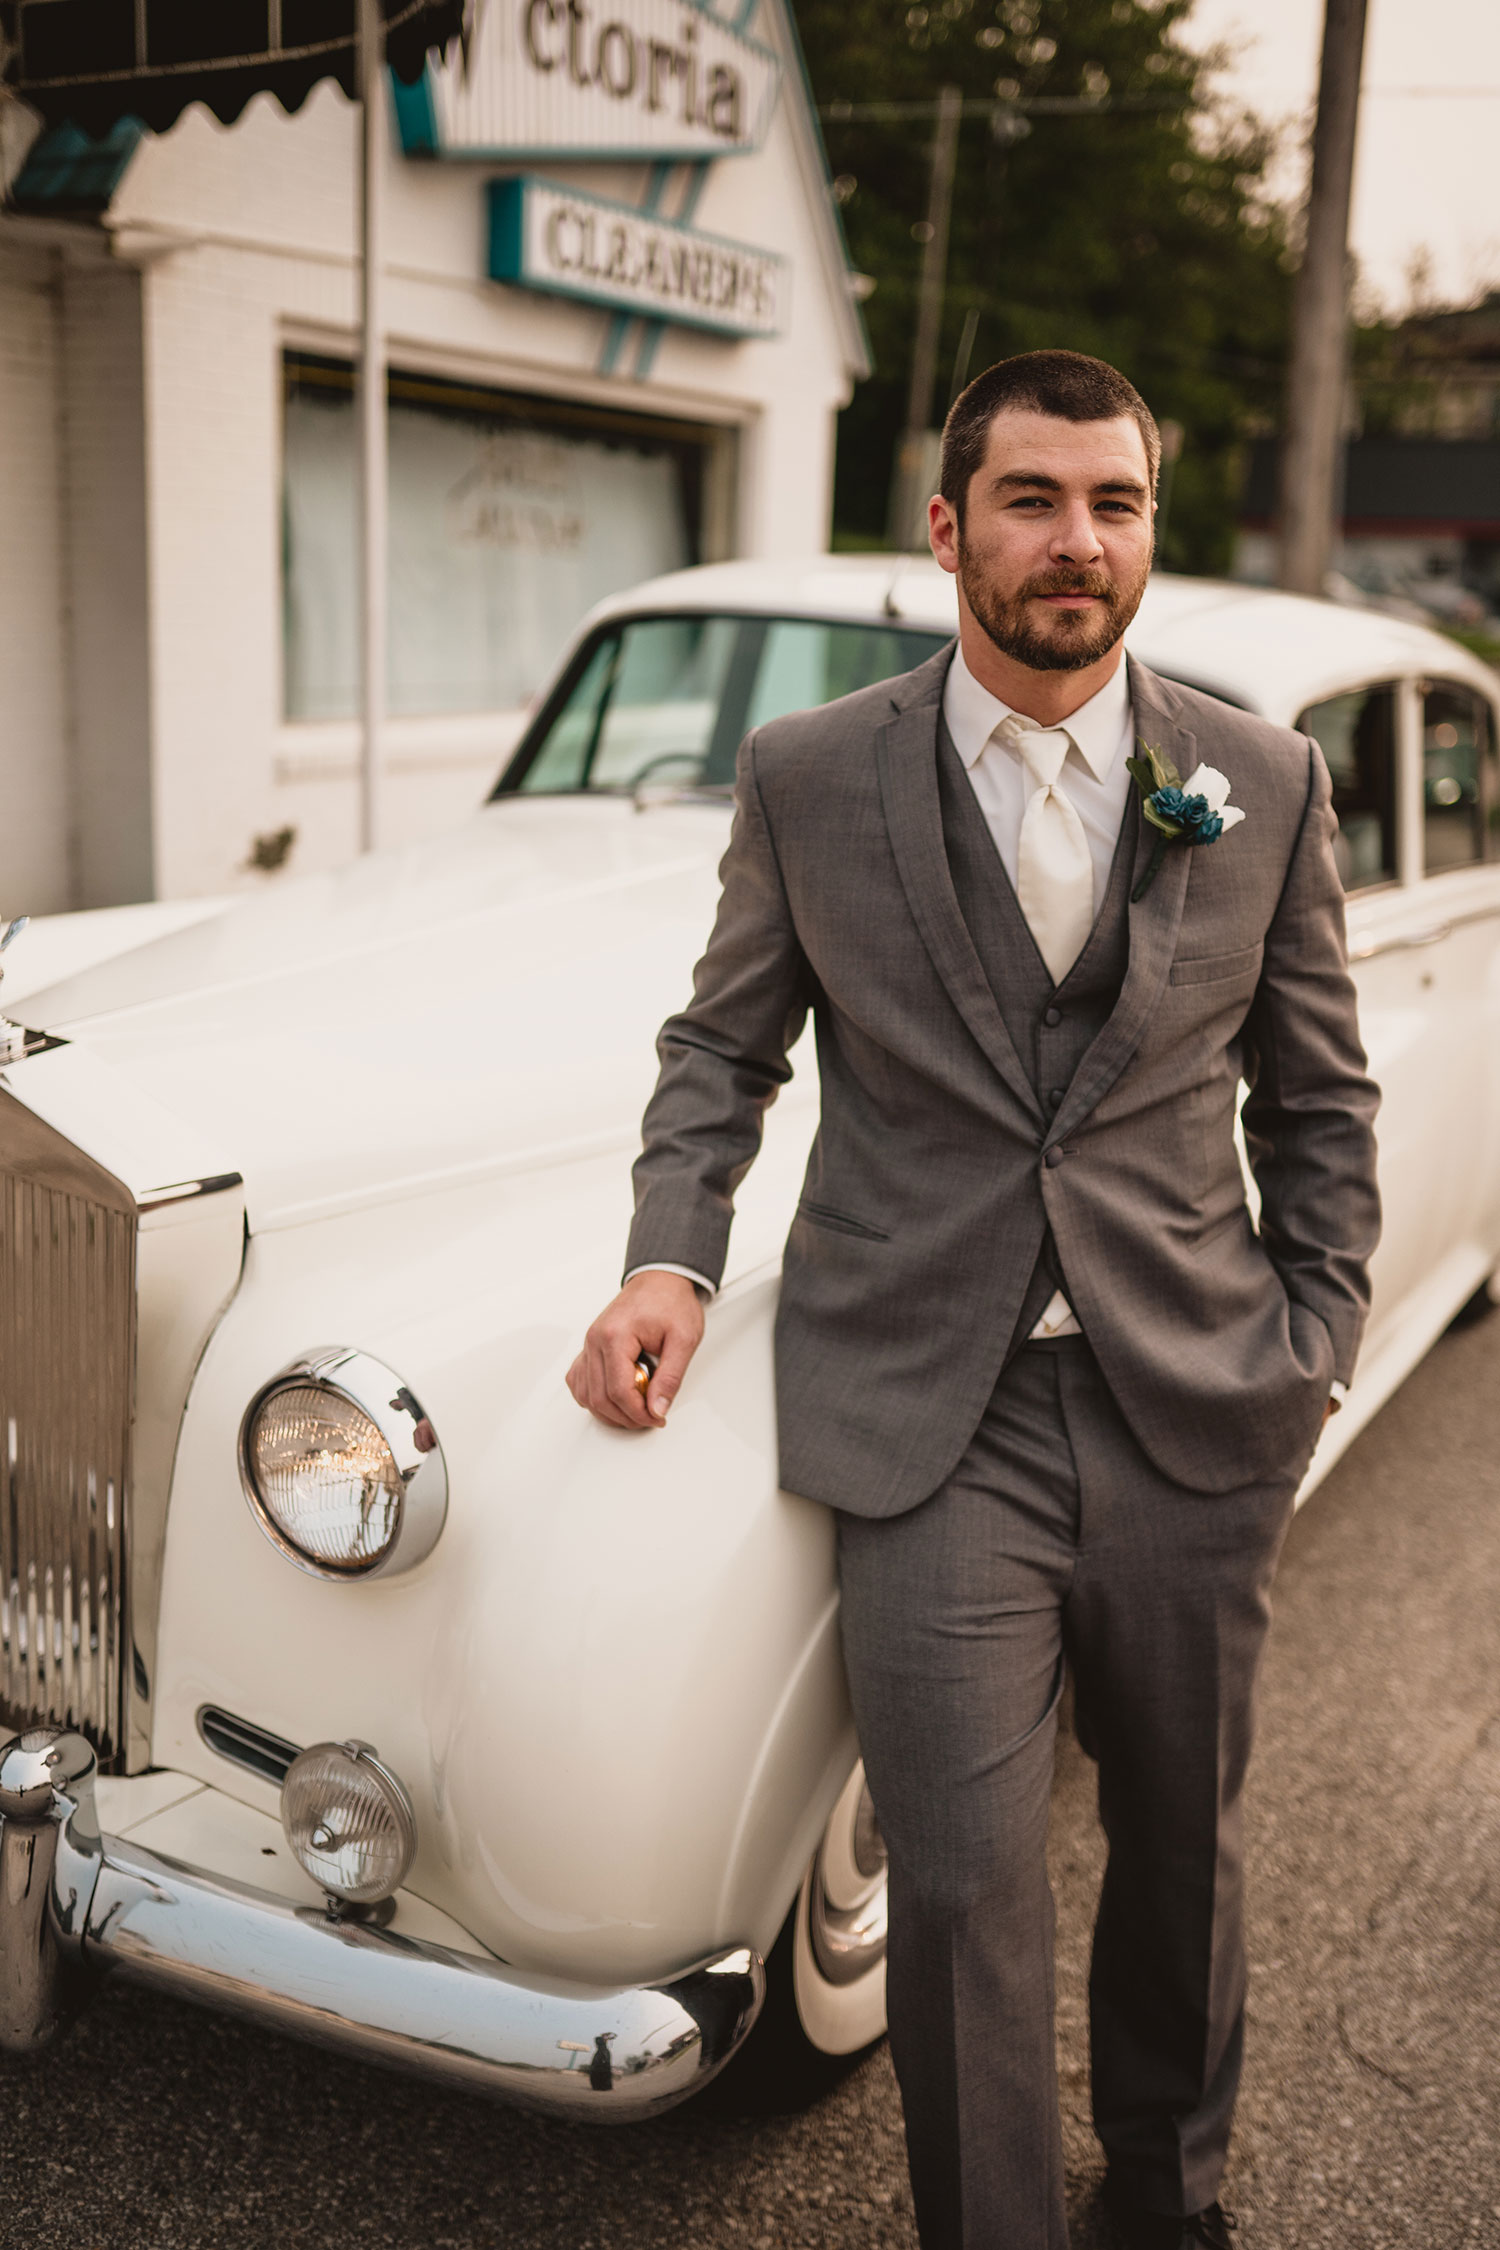 groom-standing-next-to-rolls-royce-decades-event-center-building-desmoines-iowa-raelyn-ramey-photography..jpg